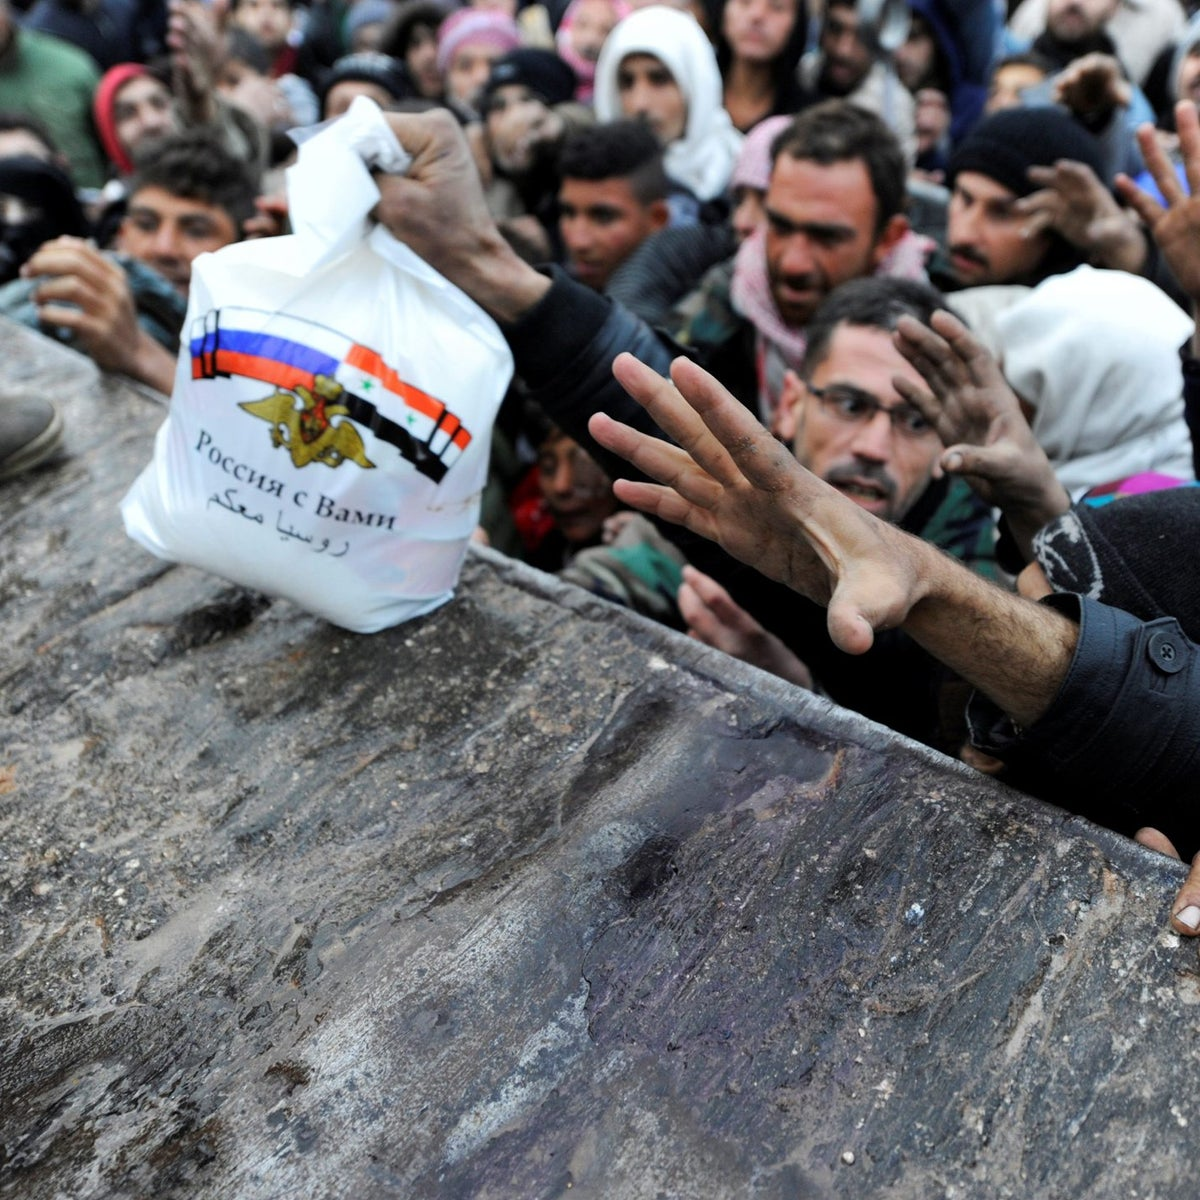 Syrians who have been evacuated from eastern Aleppo, reach out for Russian food aid in government-controlled Jibreen area in Aleppo, Syria November 30, 2016.